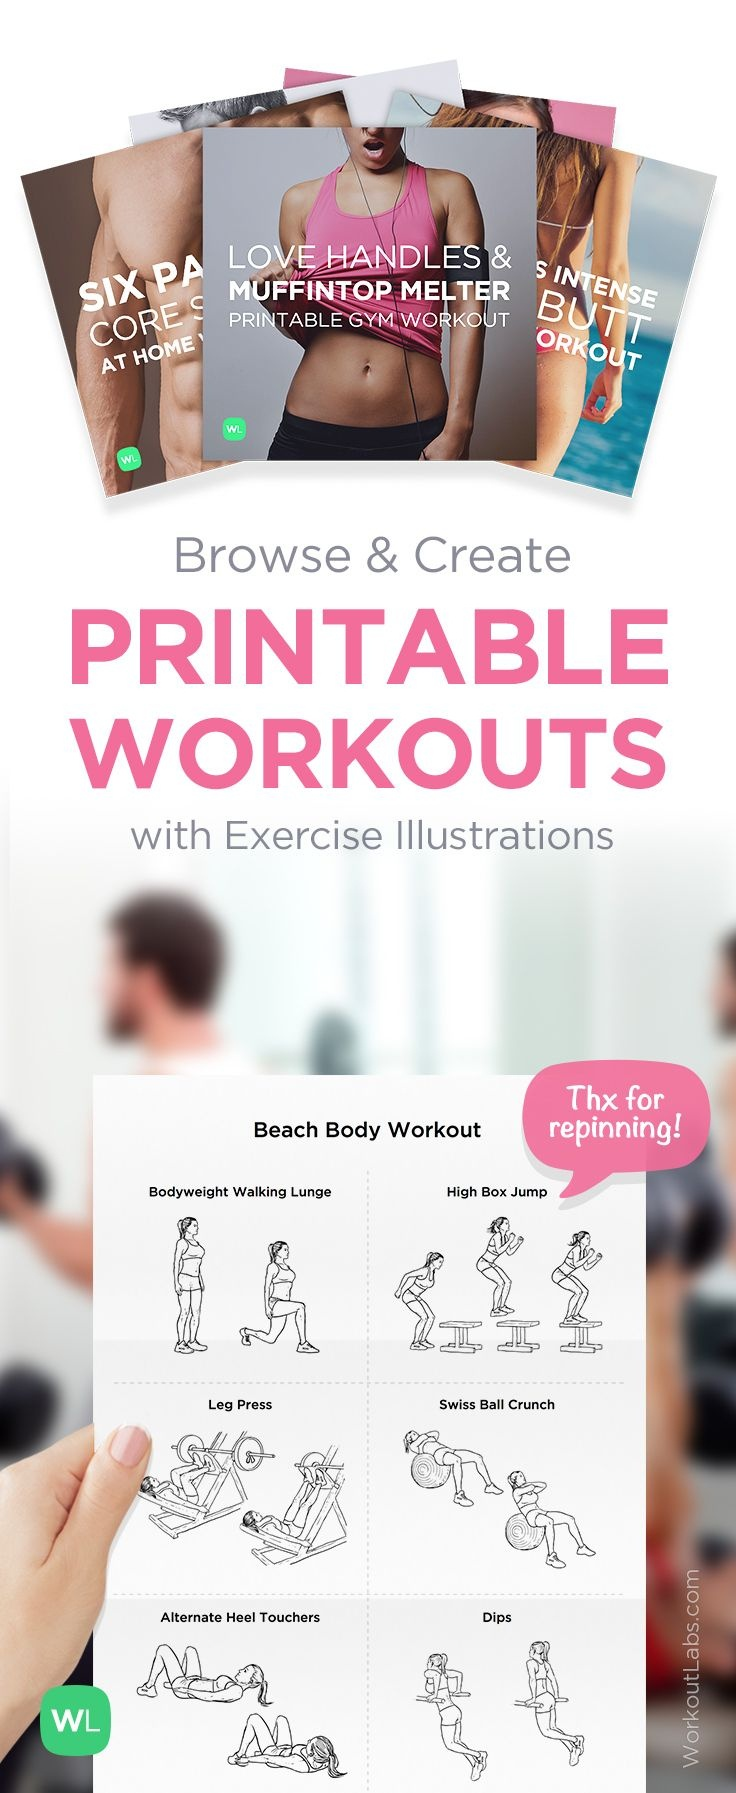 Legs And Bum Day | Excercise Abs | Printable Workouts, Fitness, Workout - Free Printable Gym Workout Plans